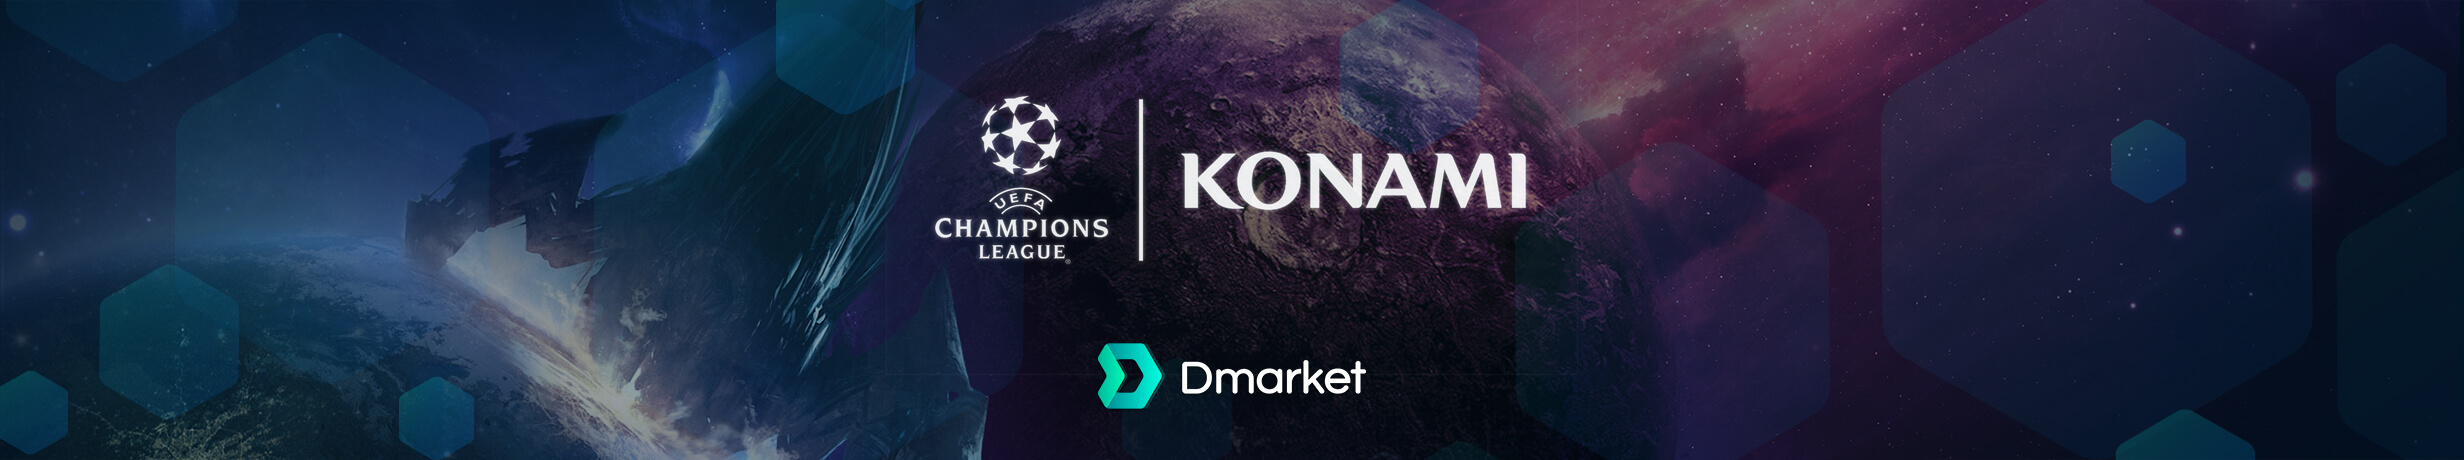 Breaking News: Konami Terminates Contract with UEFA